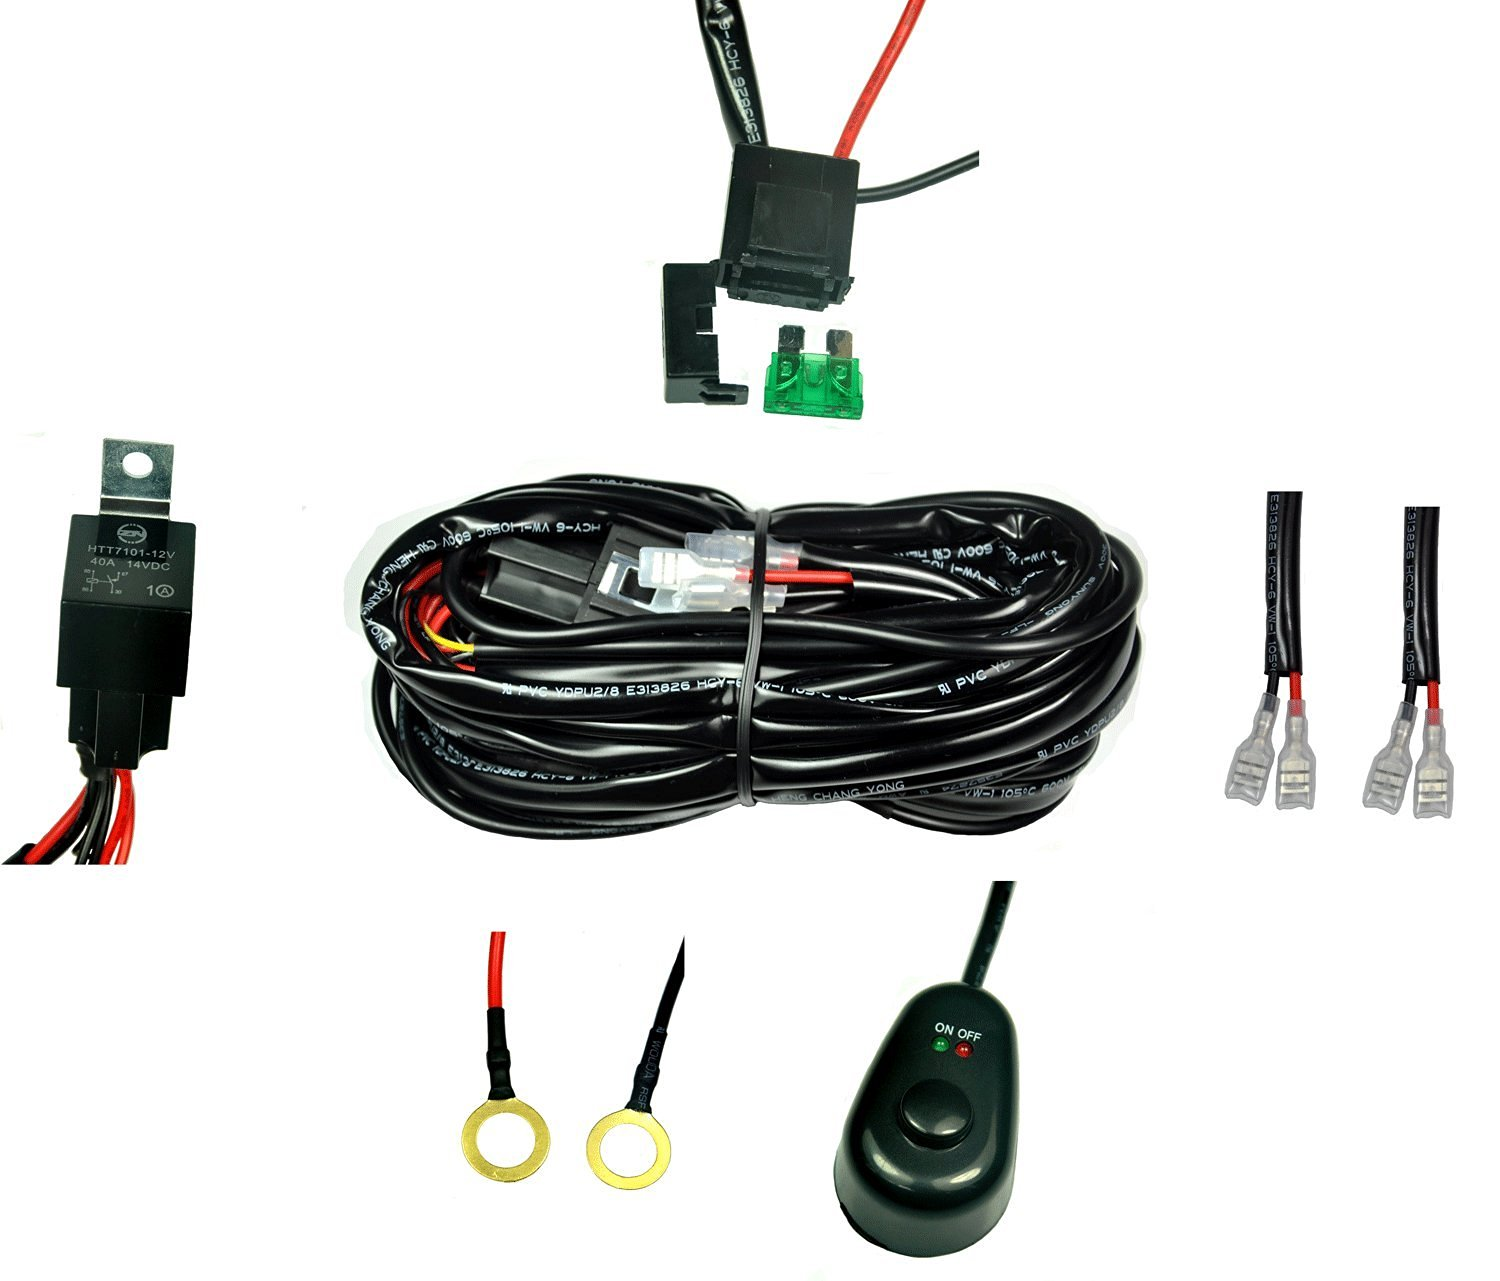 hight resolution of get quotations cutequeen wiring harness kit 40 amp relay on off switch for off